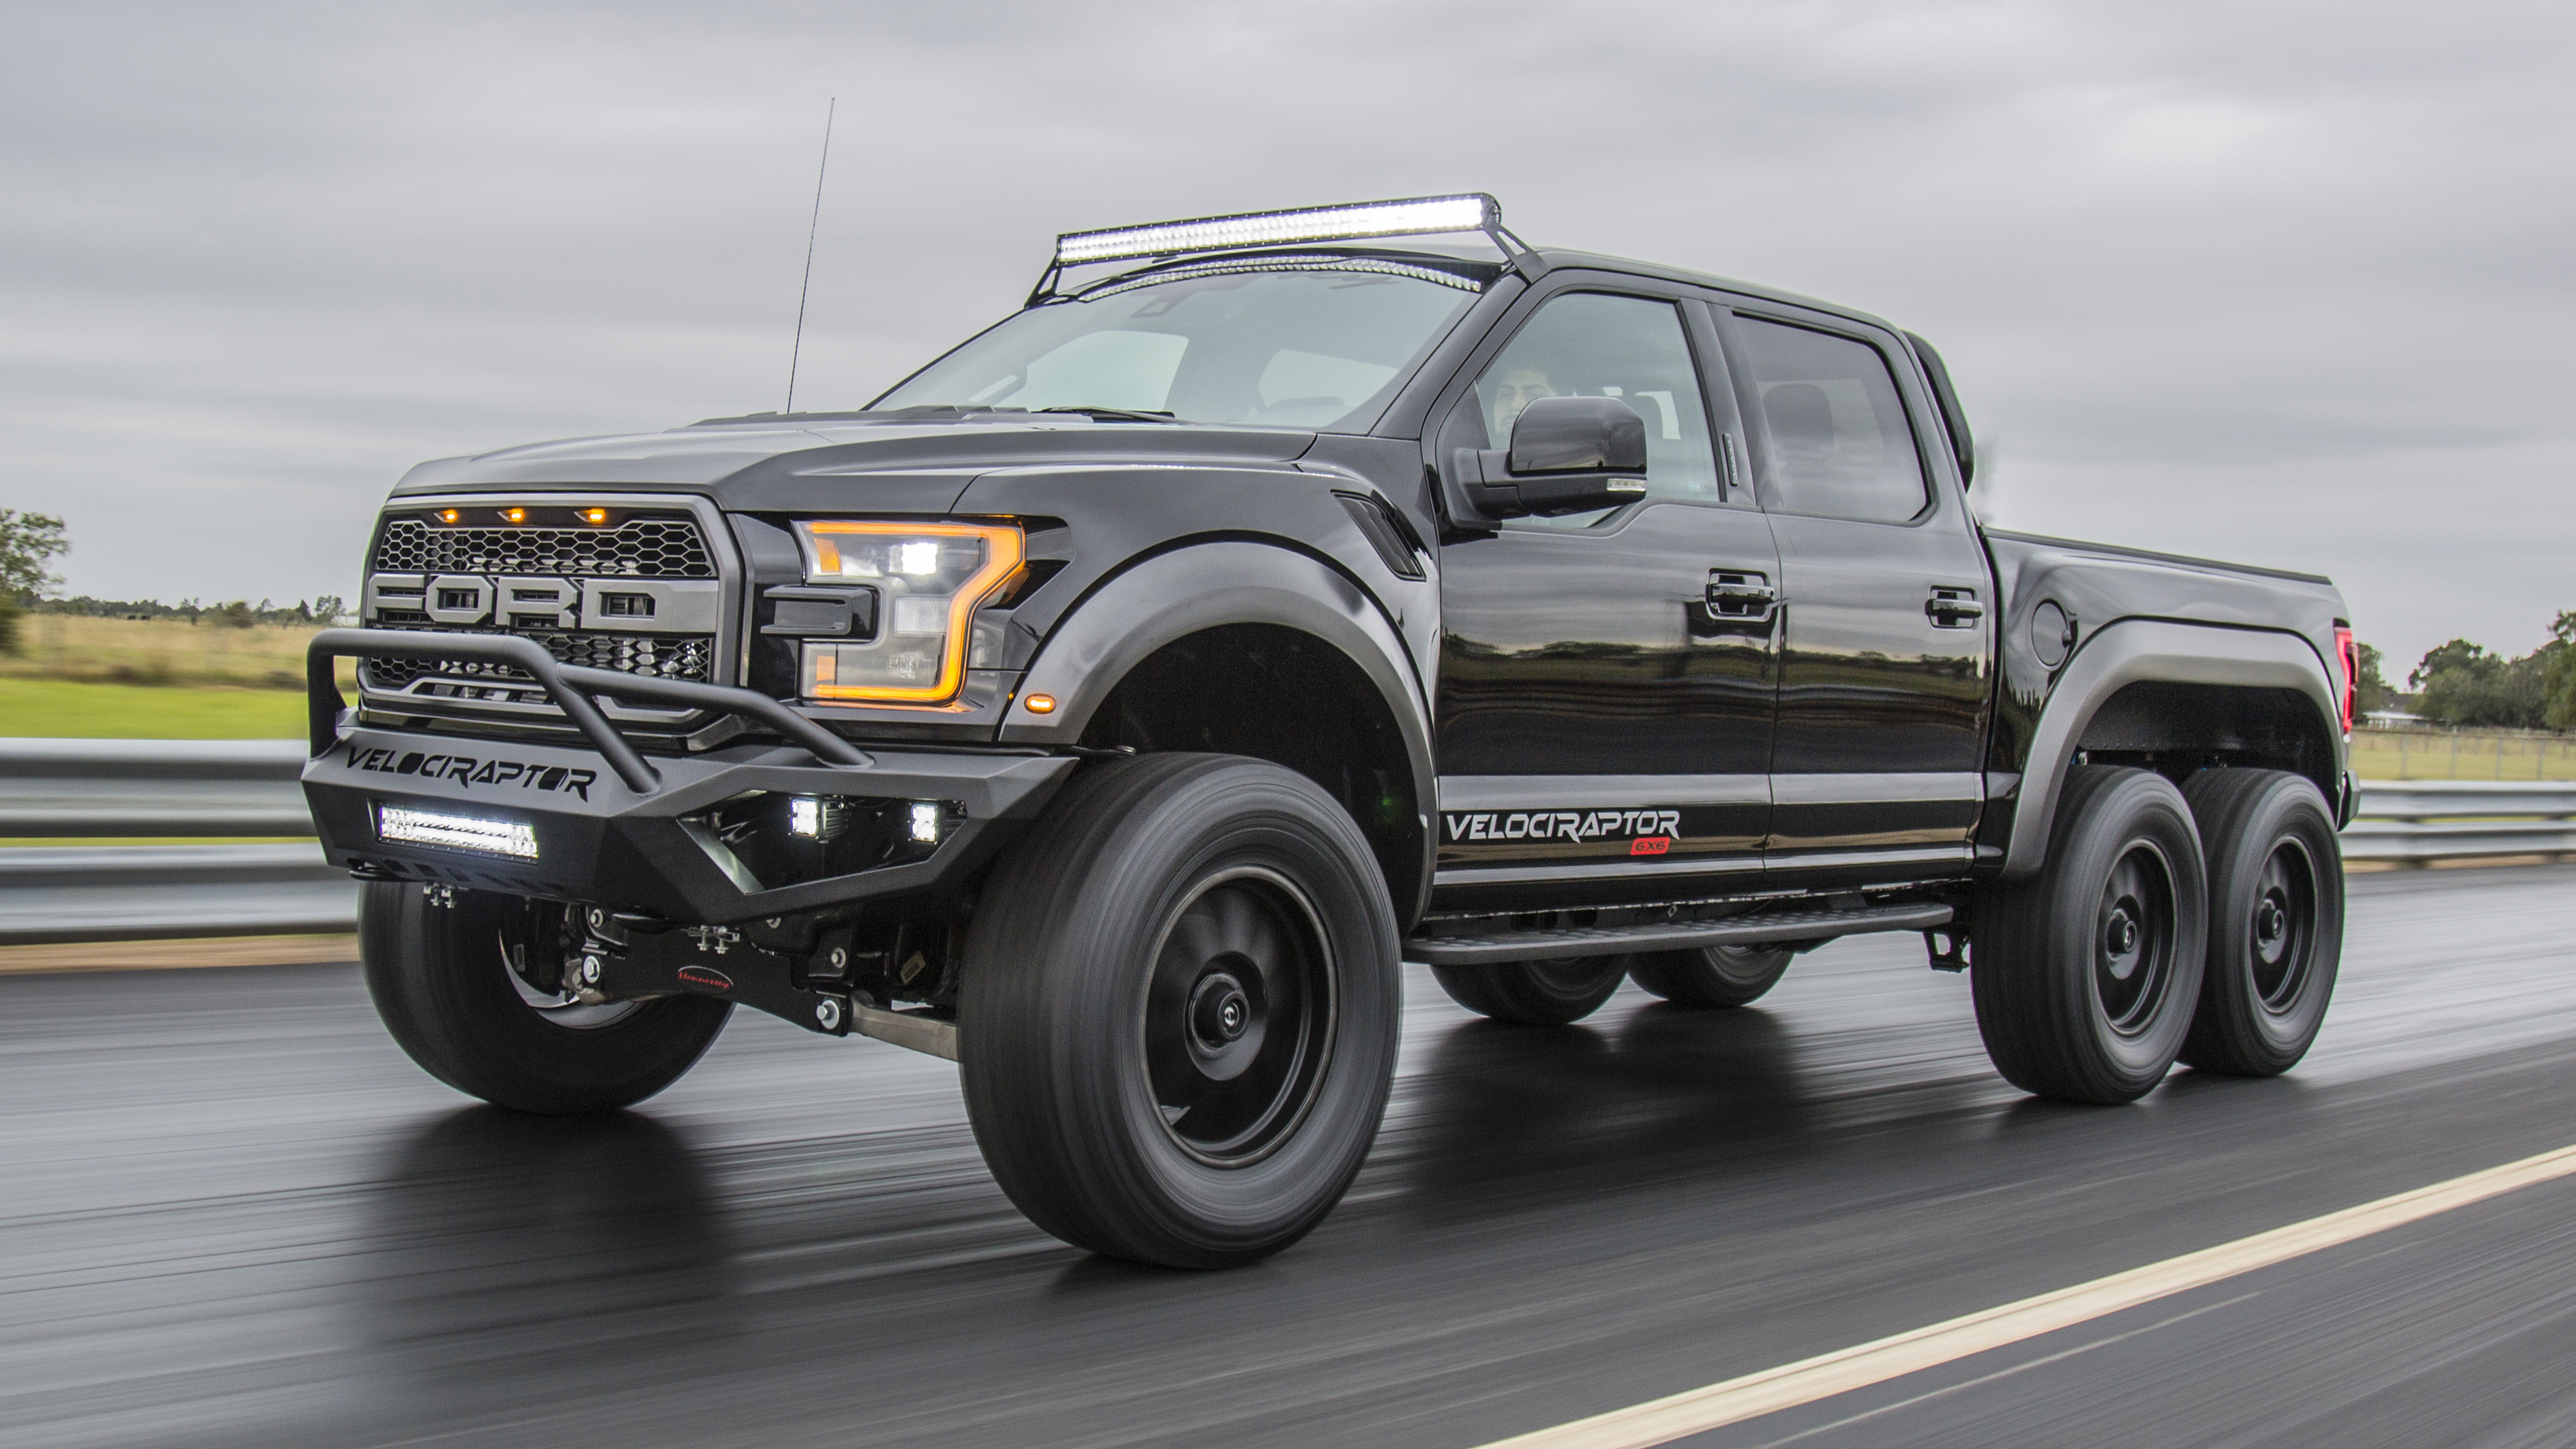 New Shelby Truck >> This is the Ford F-250 MegaRaptor truck   Top Gear